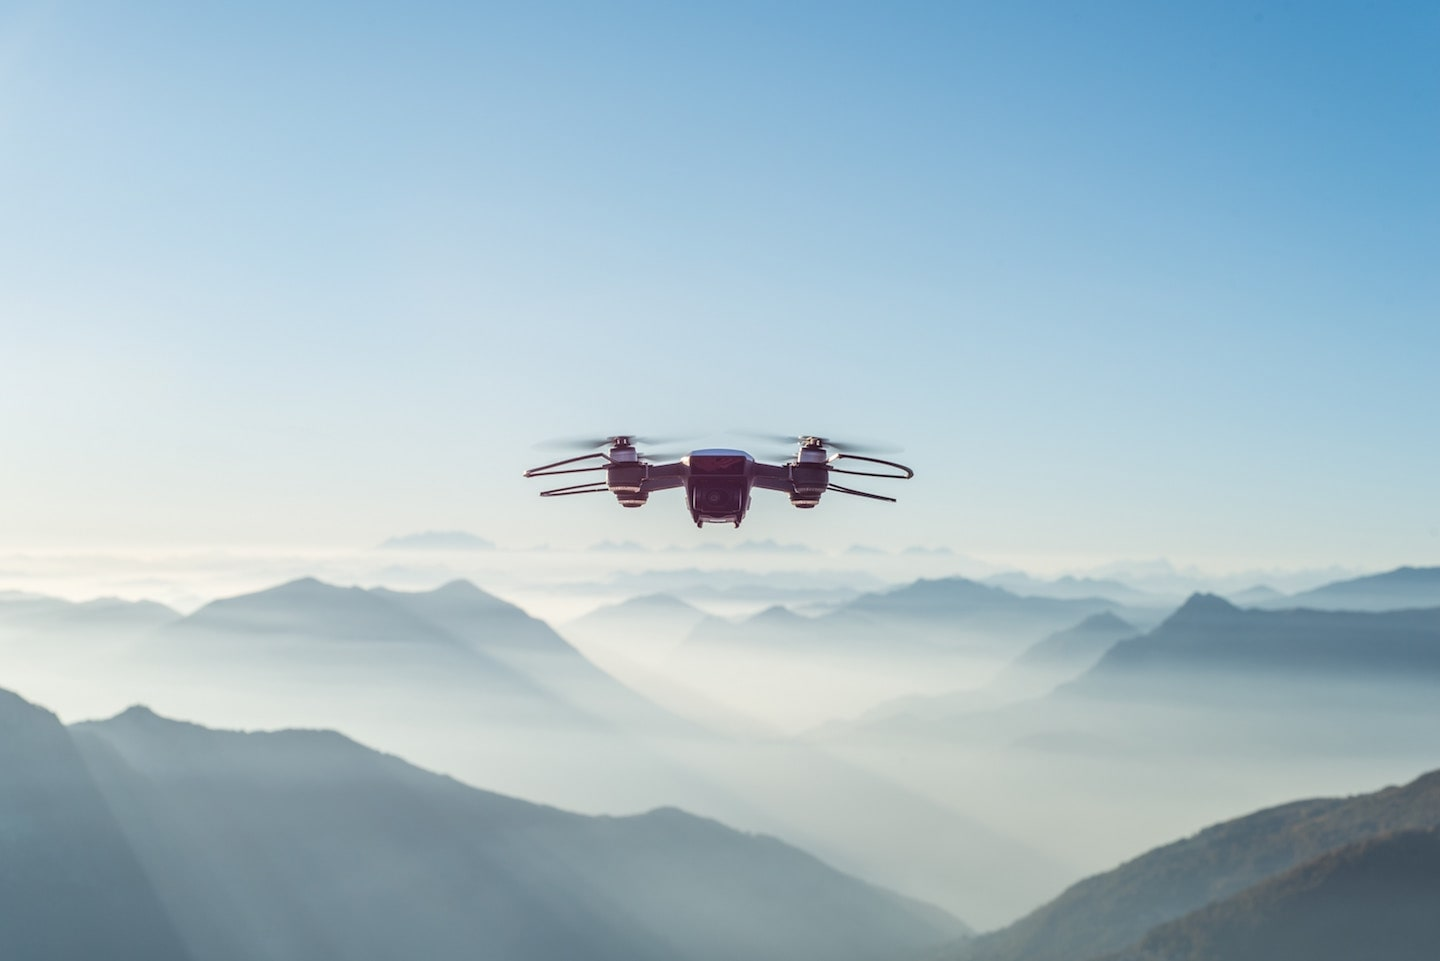 drone in mountains and clouds